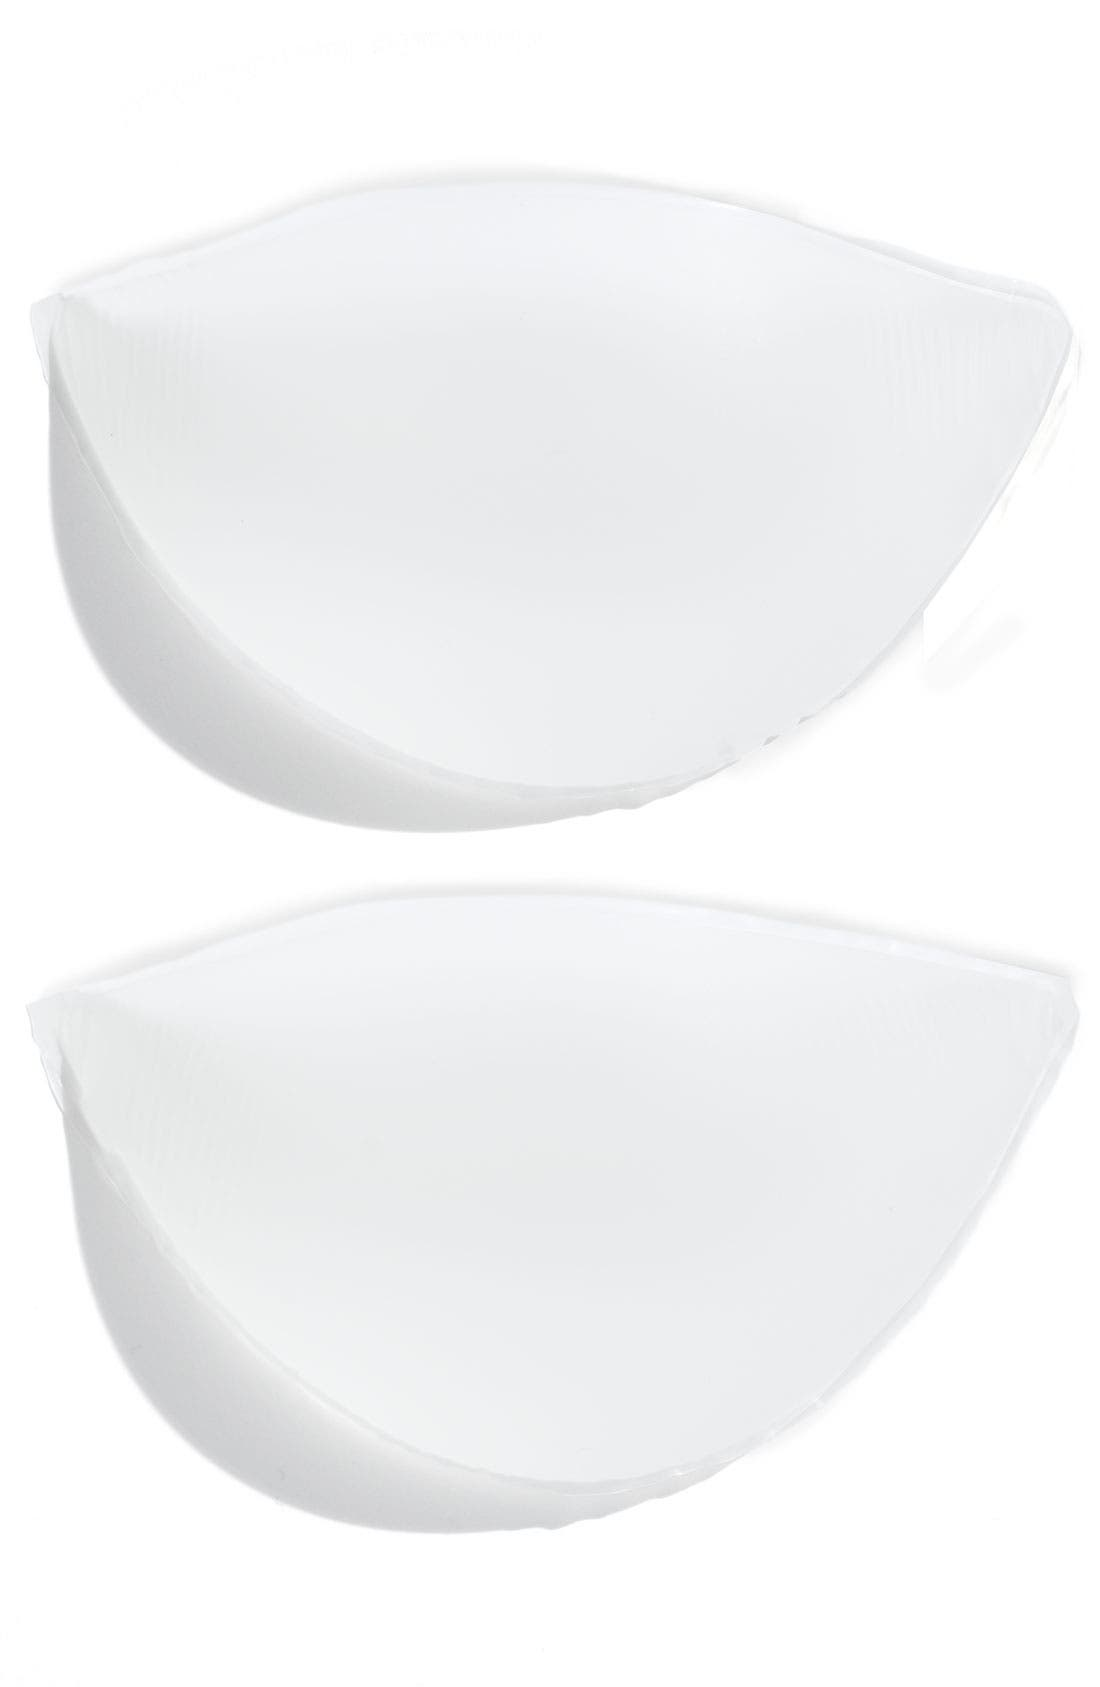 NORDSTROM LINGERIE 'NO84787' Push-Up Gel Pads, Main, color, NEW CLEAR